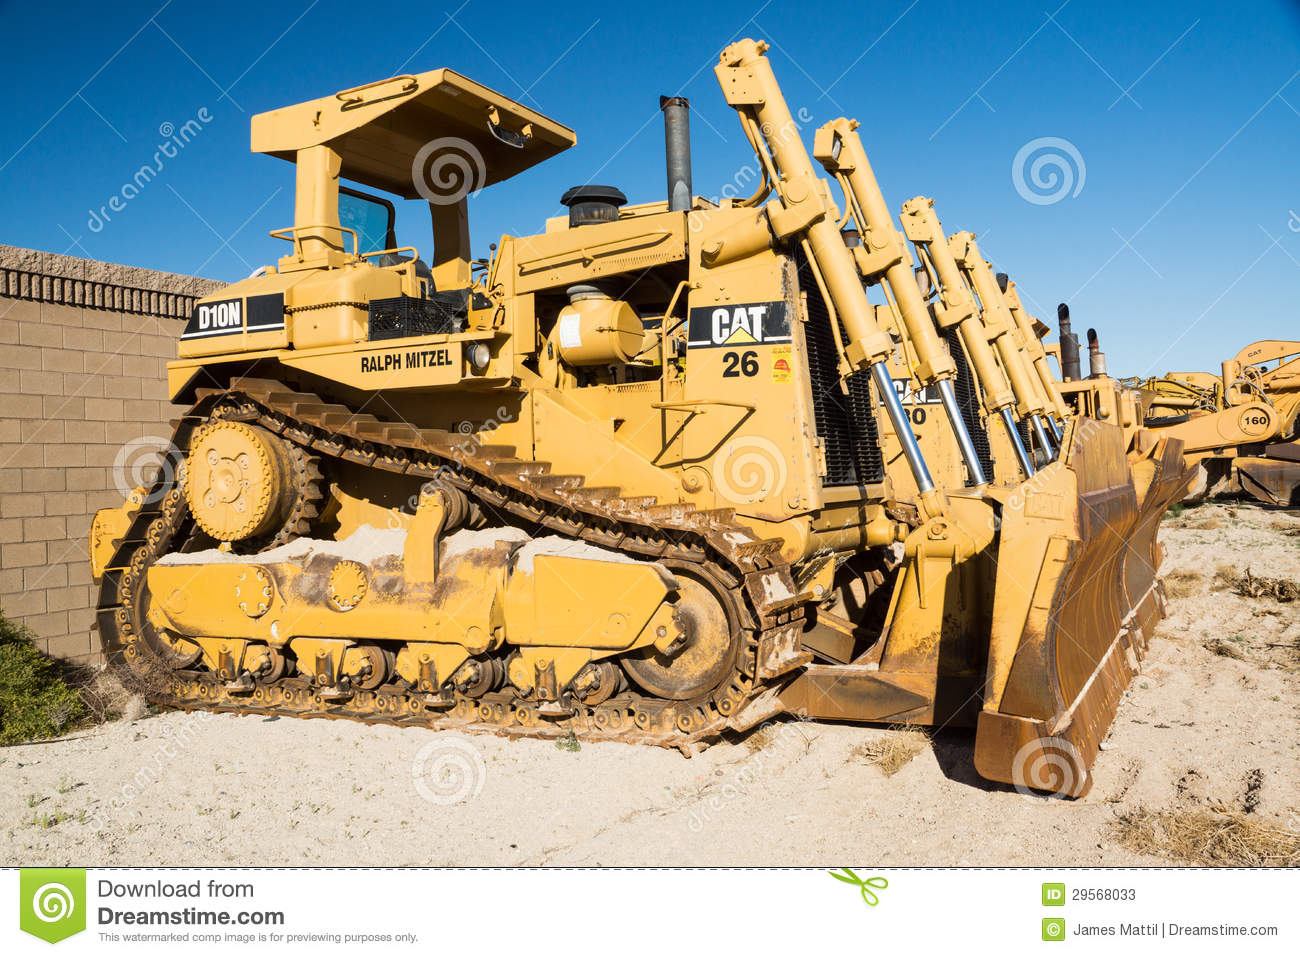 bulldozers-work-wanted-29568033.jpg